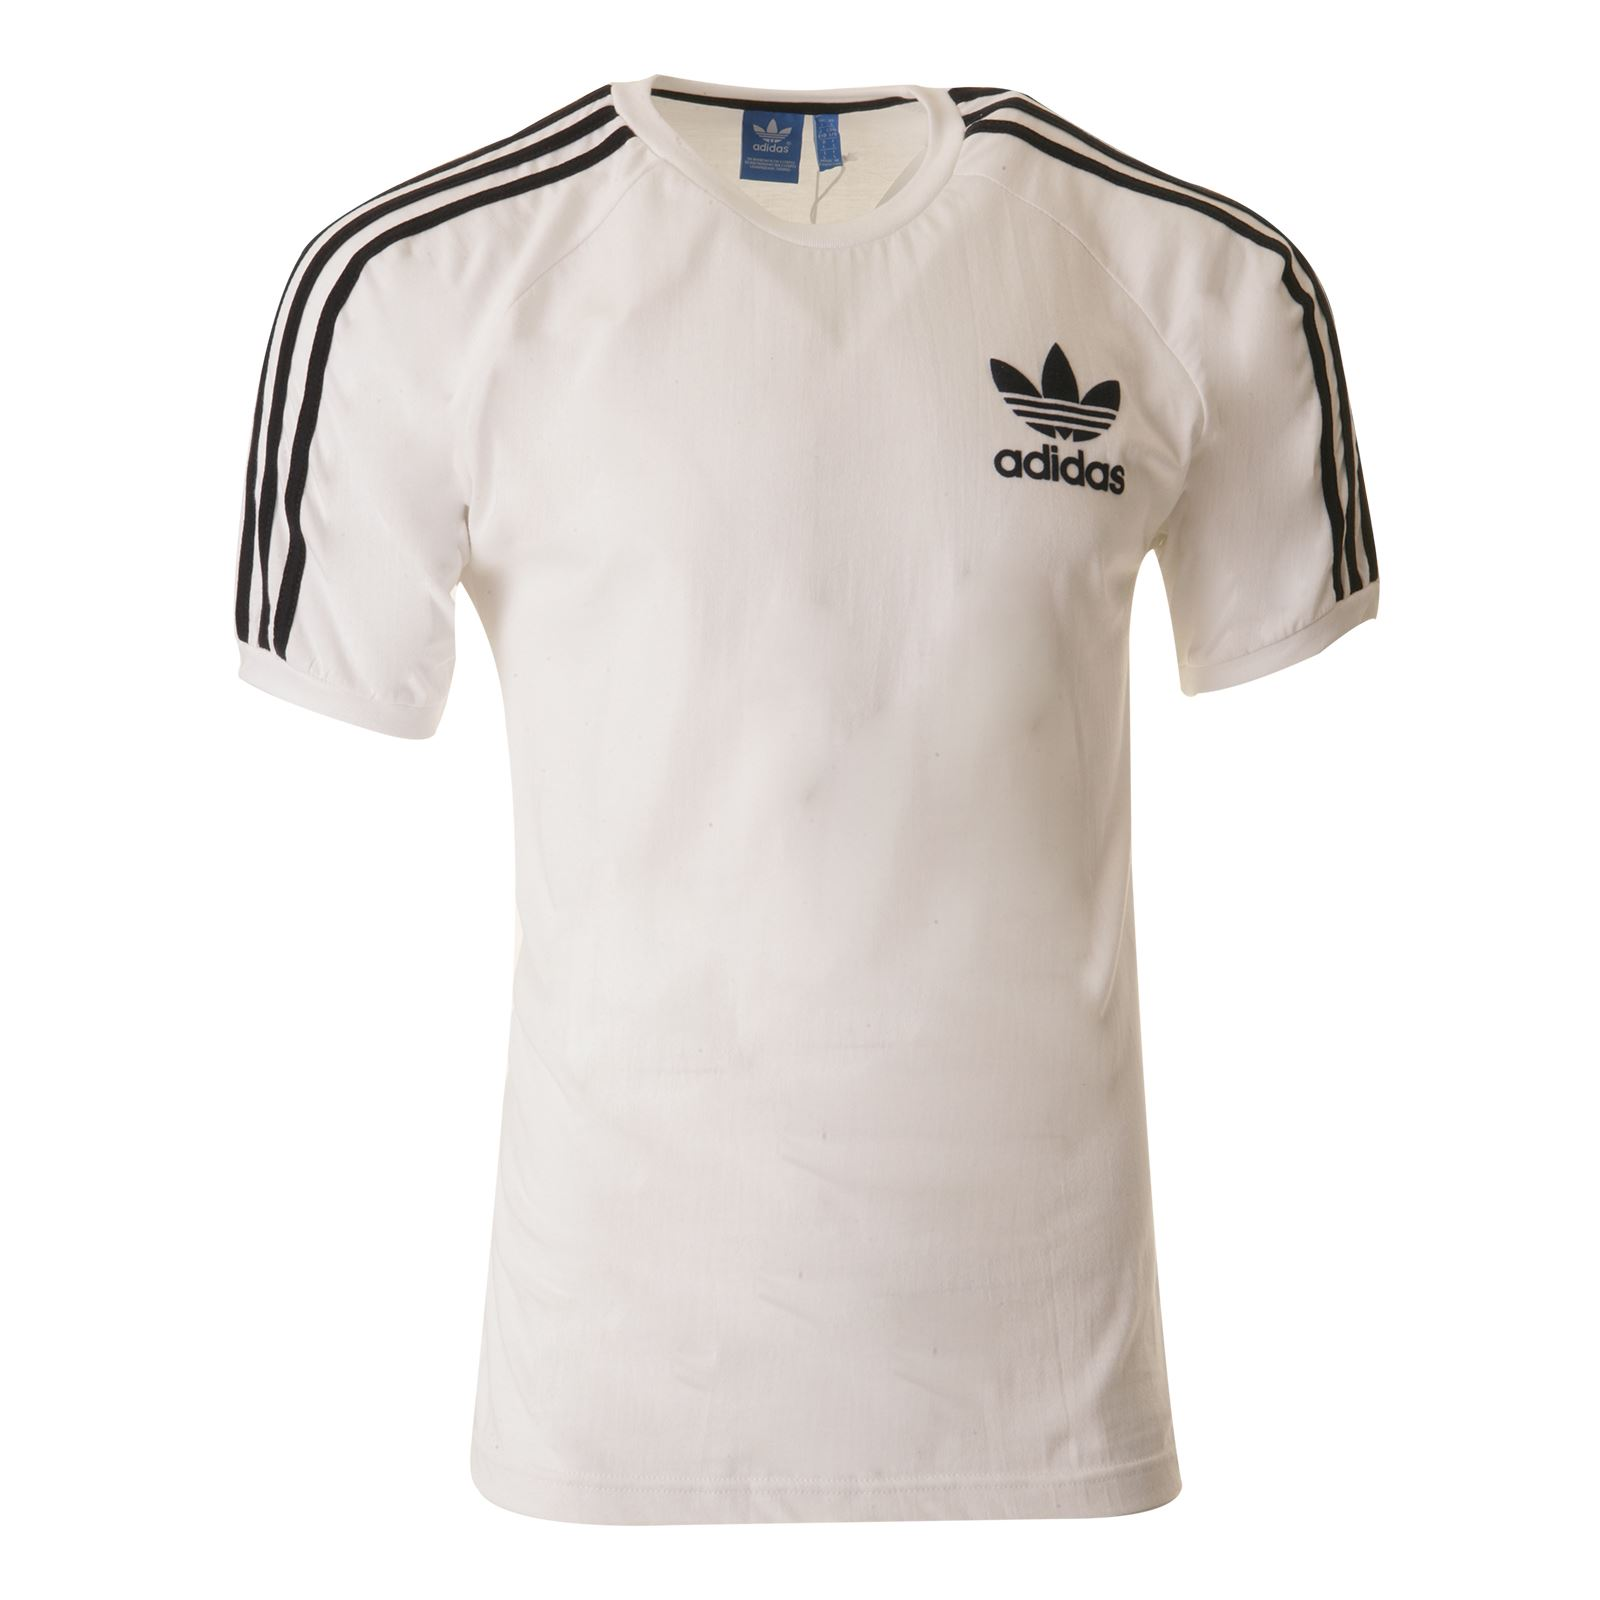 T shirt adidas white - Our Top Pick